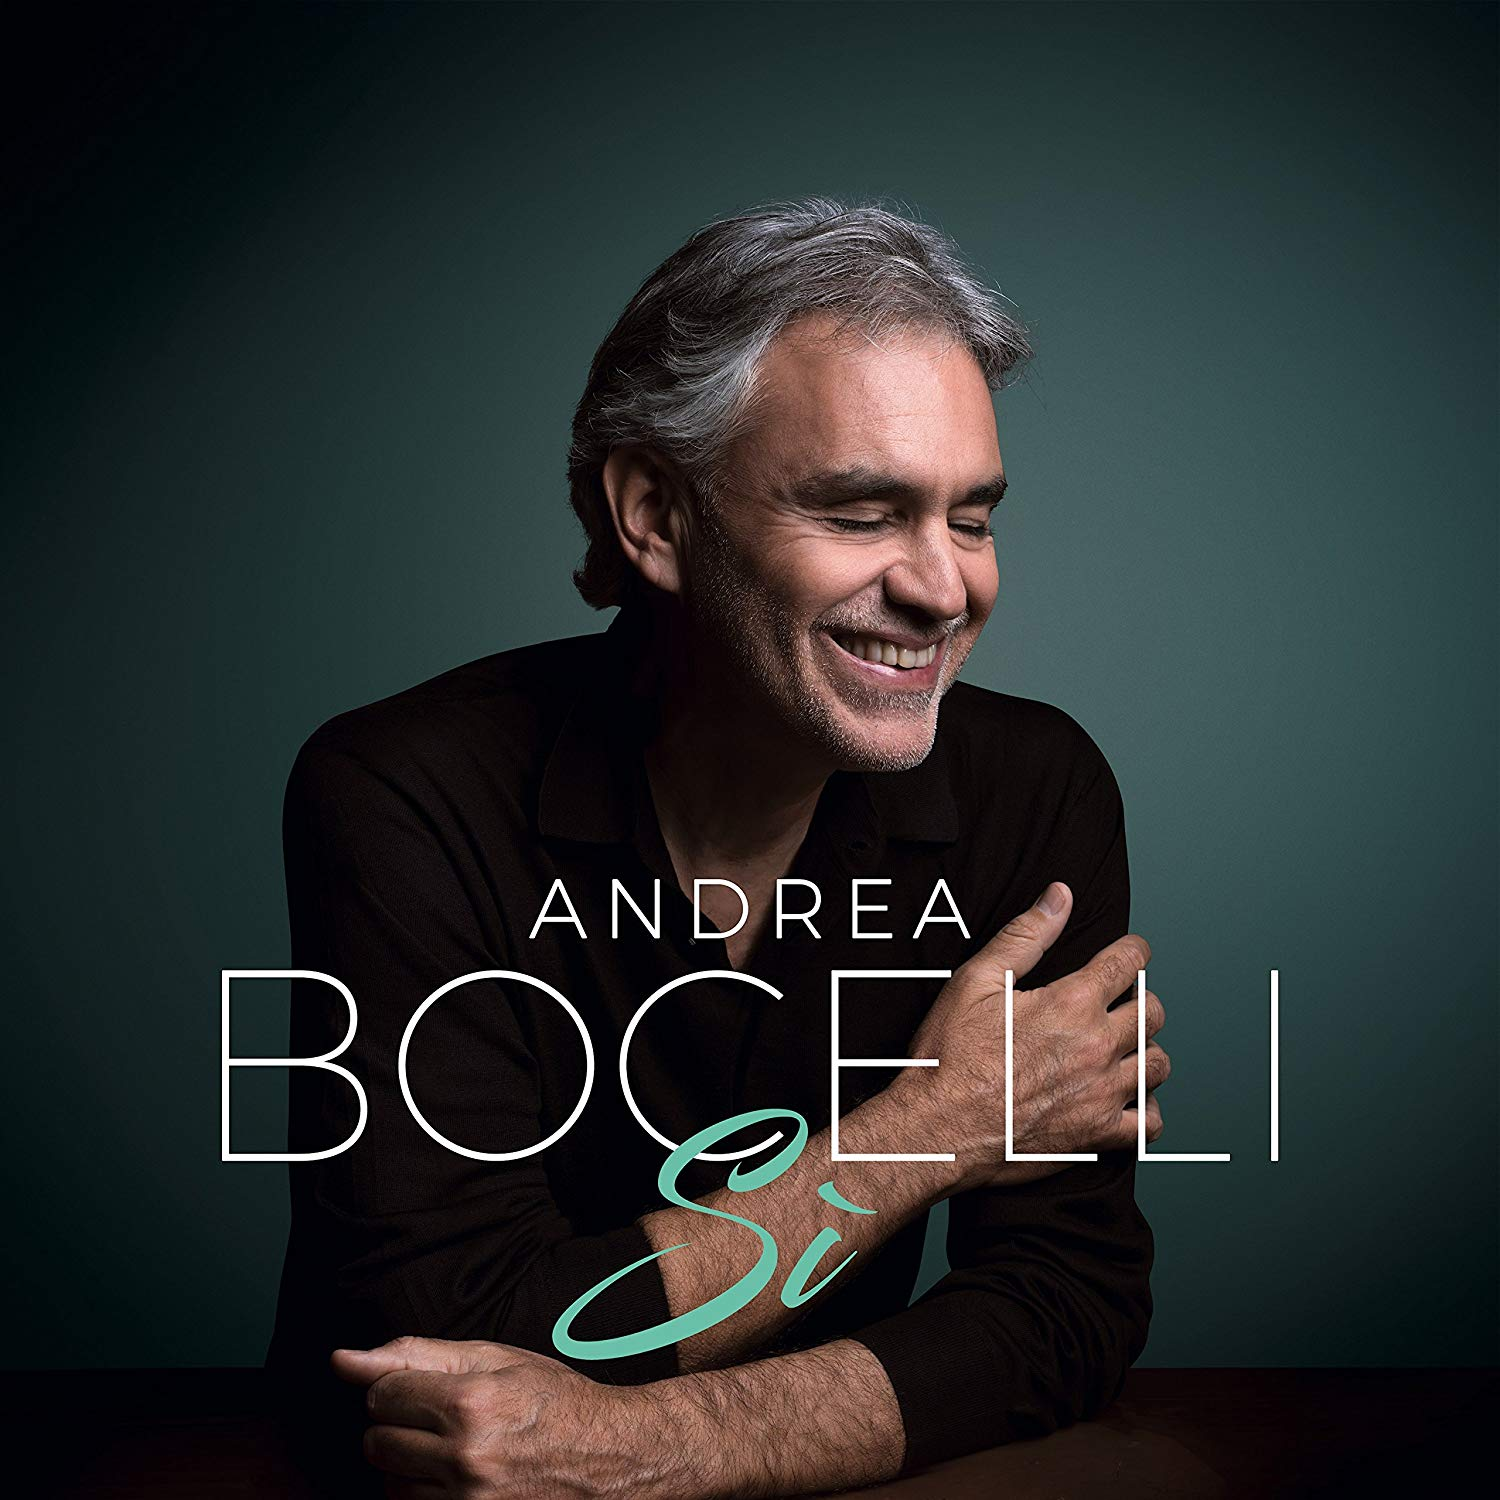 Andrea Bocelli, Sí | Album Review - The Musical Hype